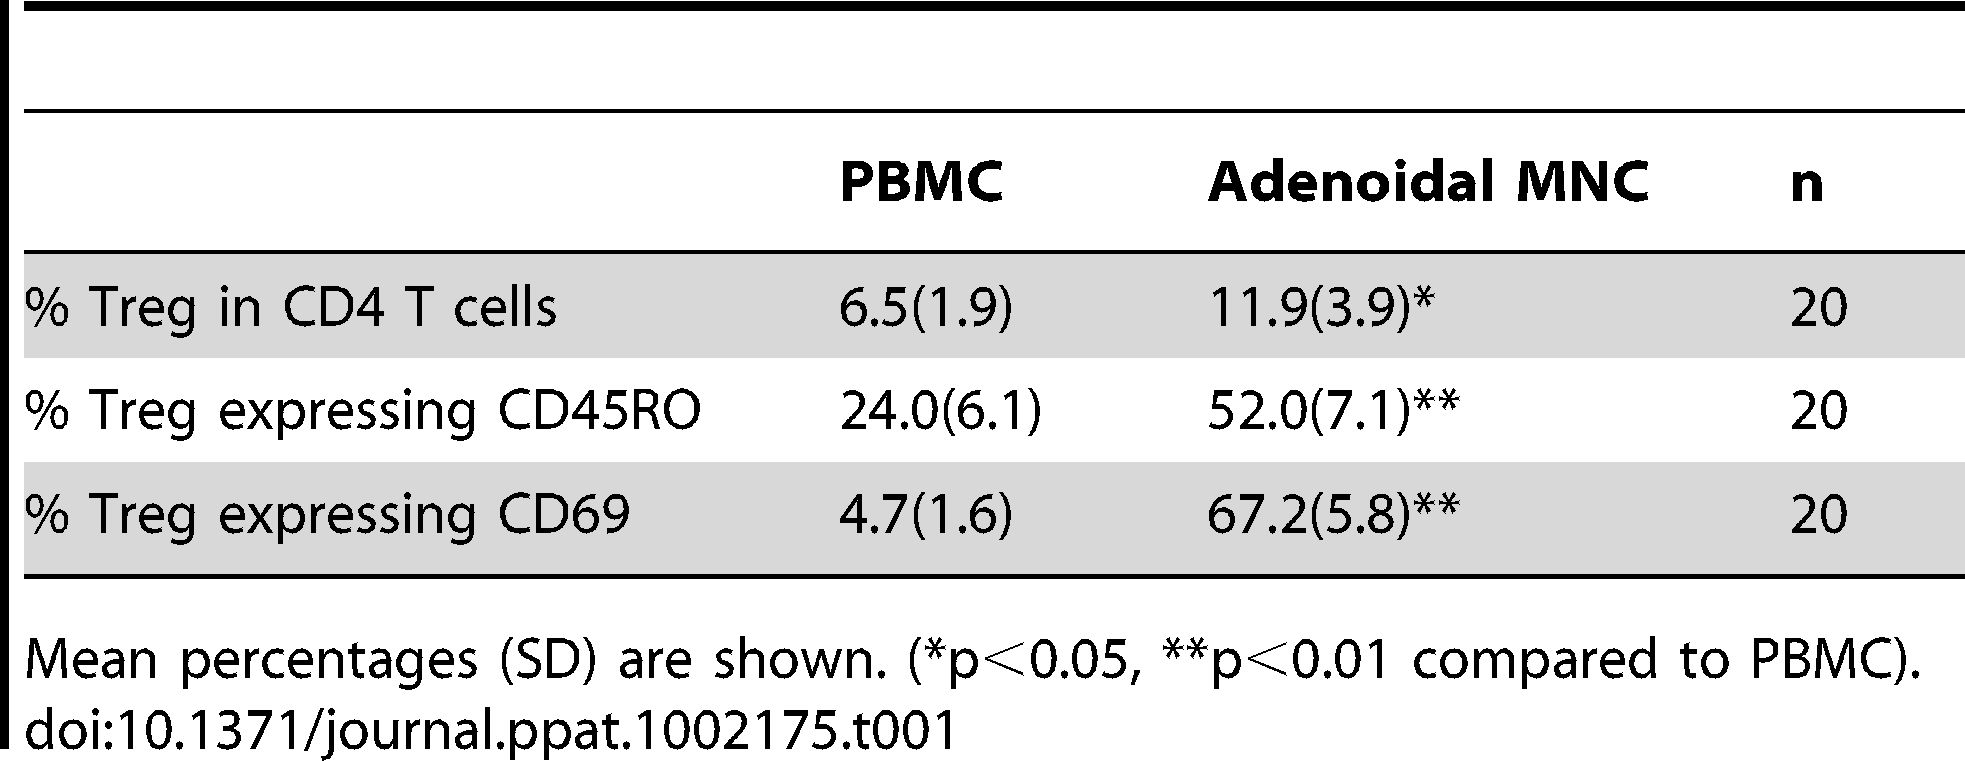 Proportion of Treg in CD4+T cells and percentages of Treg expressing CD45RO and CD69 in PBMC and adenoidal MNC.